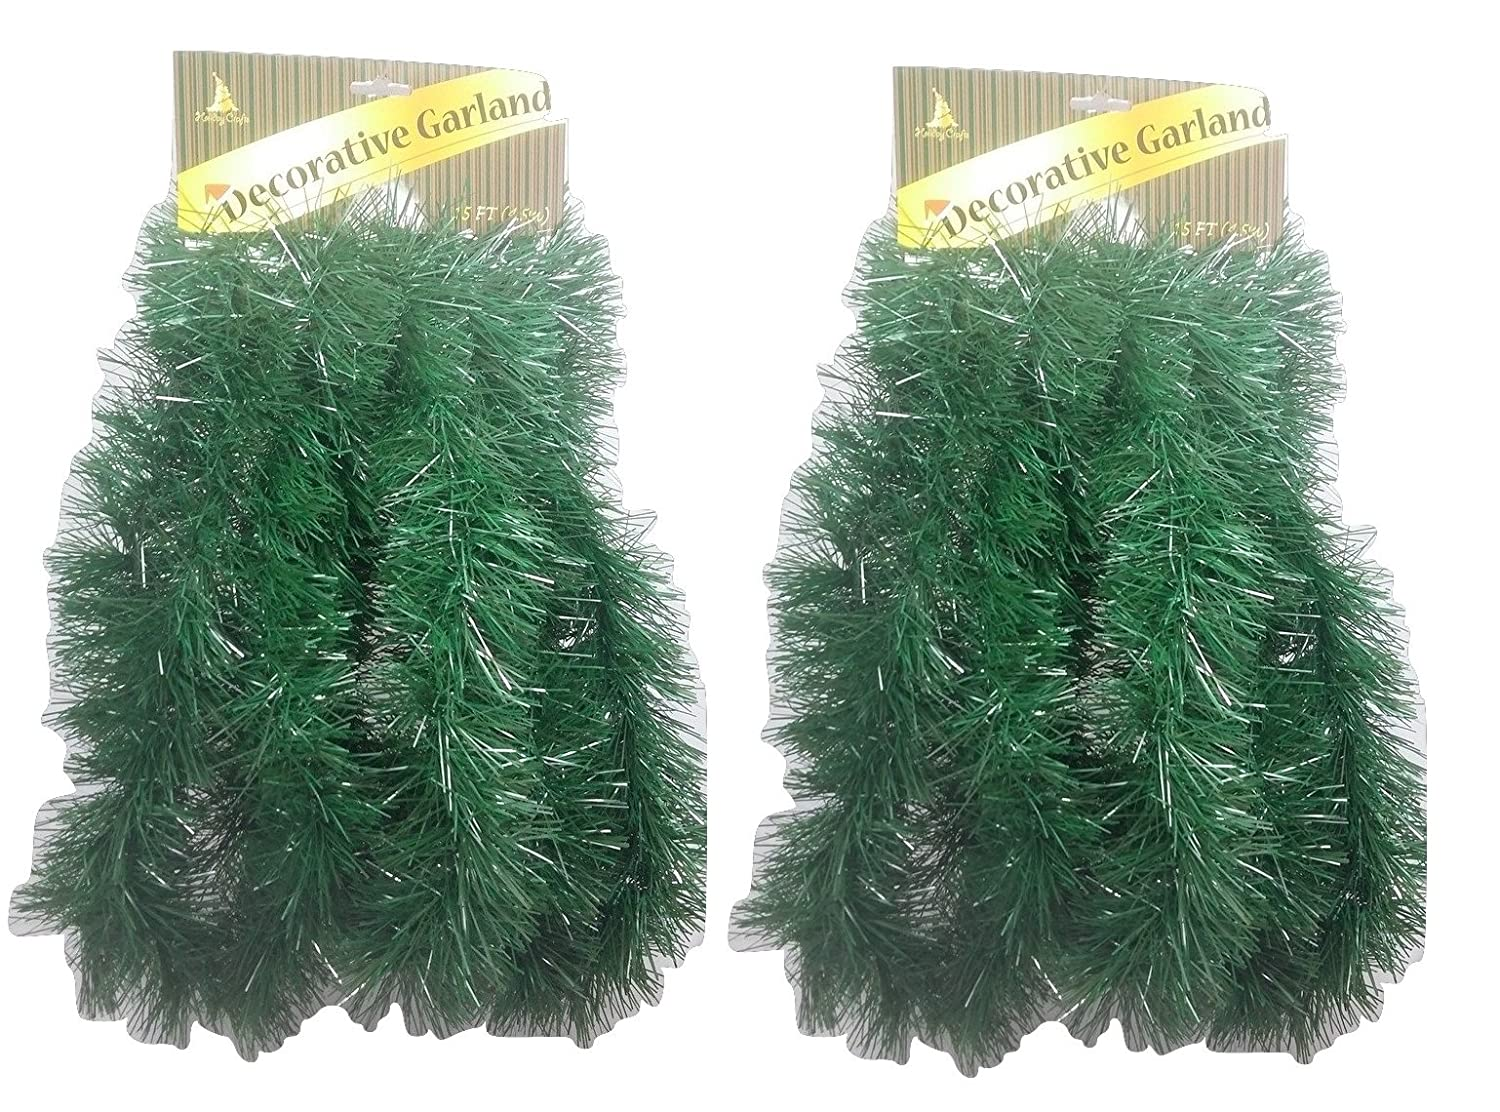 - Total of 30 Feet Set of 2 Decorative Christmas Garland 15 Ft TM Holiday Crafts Pine